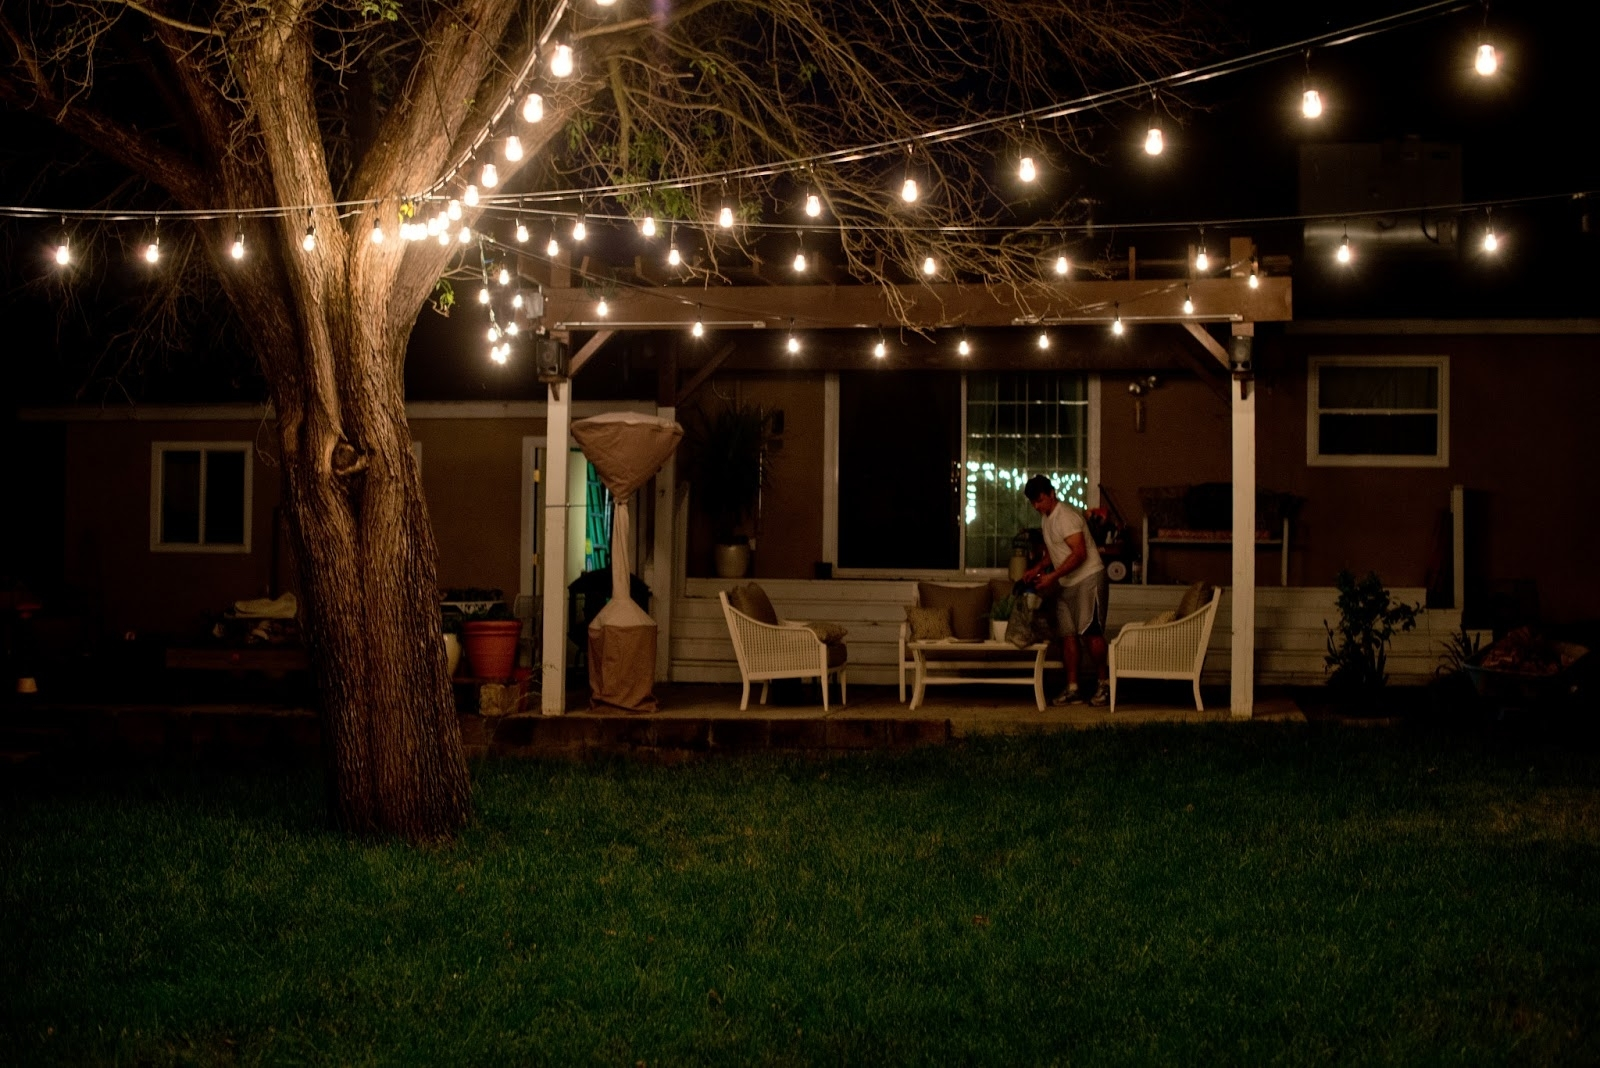 Outdoor Hanging Lights On String For Well Liked Lighting: Pretty Outdoor Hanging Lights For Outdoor Lighting Design (View 5 of 20)